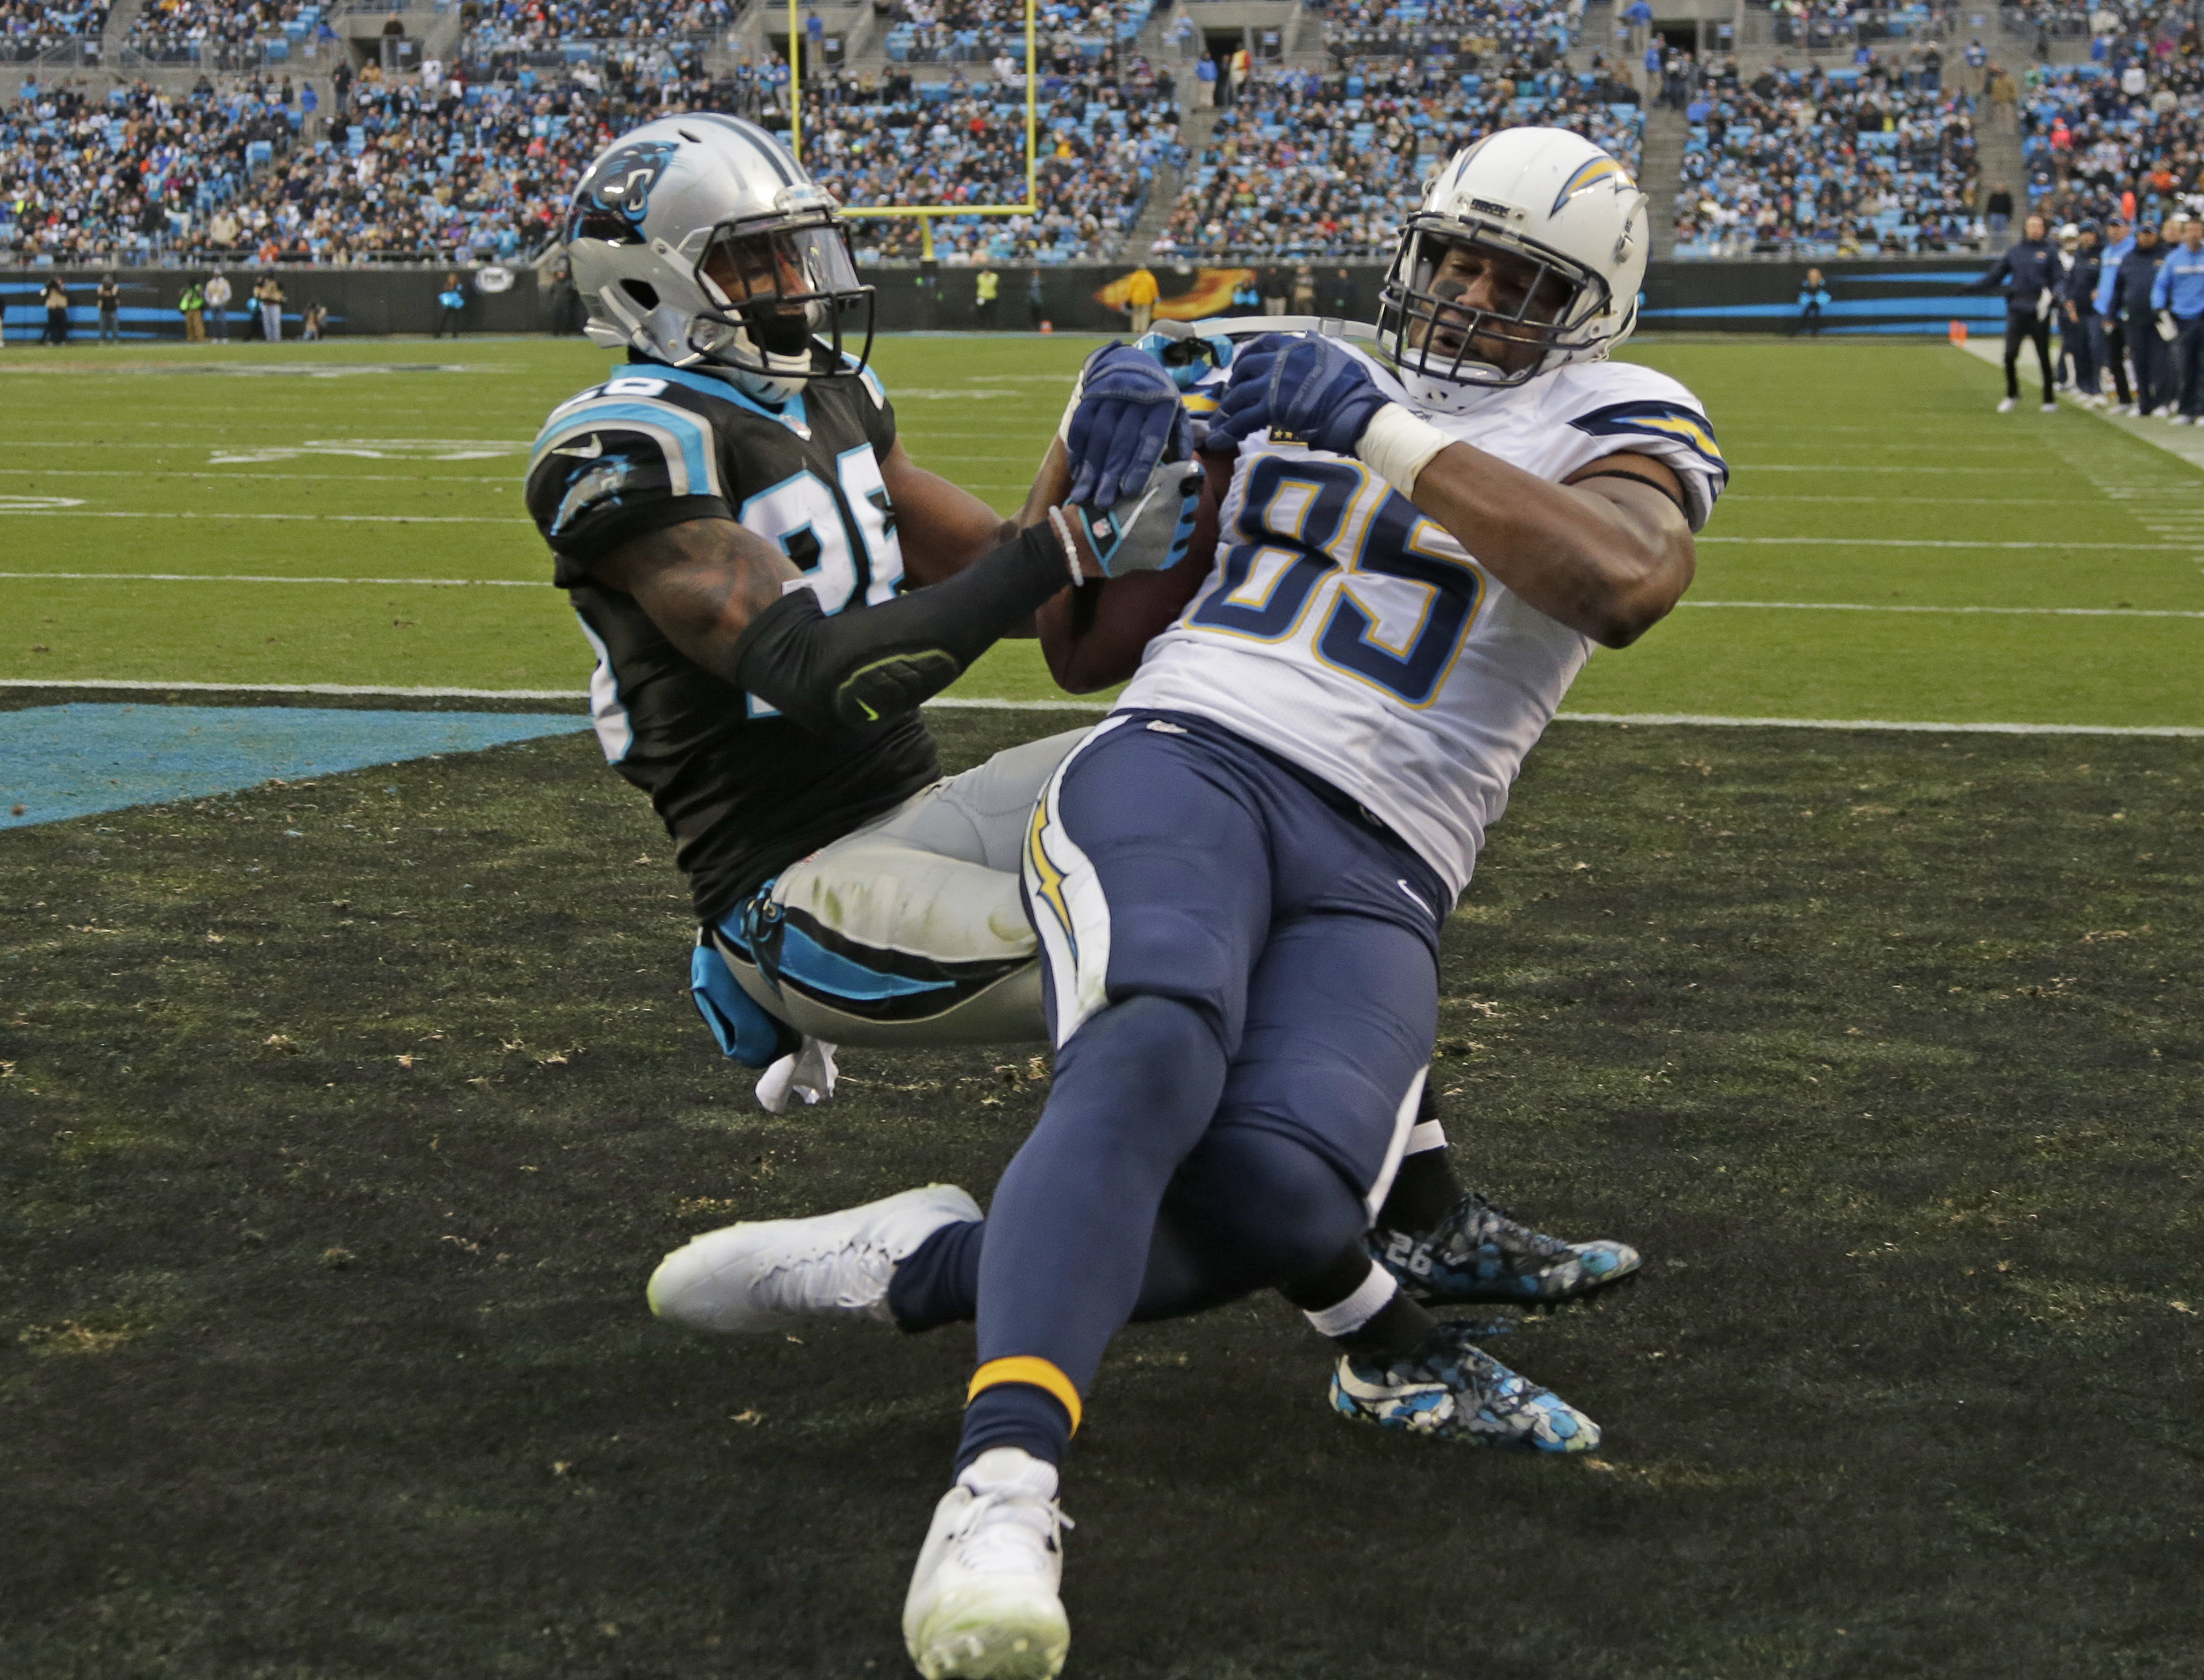 San Diego Chargers' Antonio Gates (85) drops a two-point conversion pass attempt as Carolina Panthers' Daryl Worley (26) defends in the second half of an NFL football game in Charlotte, N.C., Sunday, Dec. 11, 2016. (AP Photo/Bob Leverone)